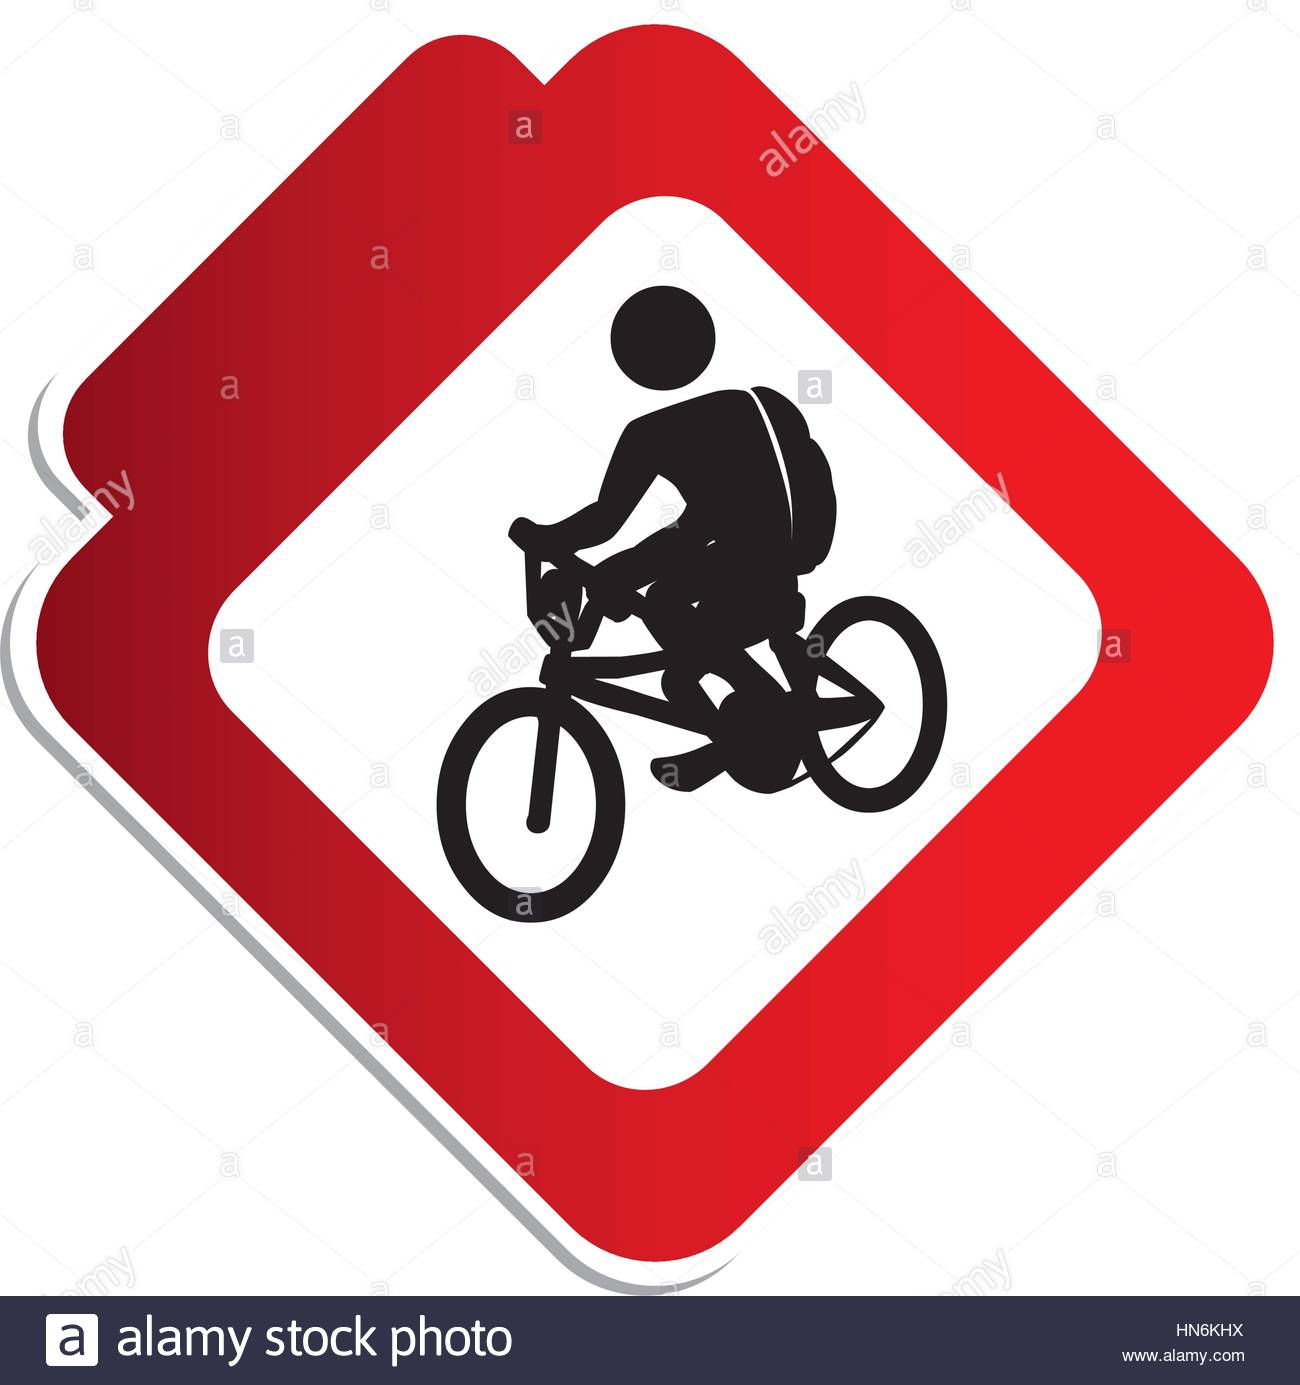 1300x1385 Silhouette Color Road Sign With Pictogram Man Cyclist Stock Vector